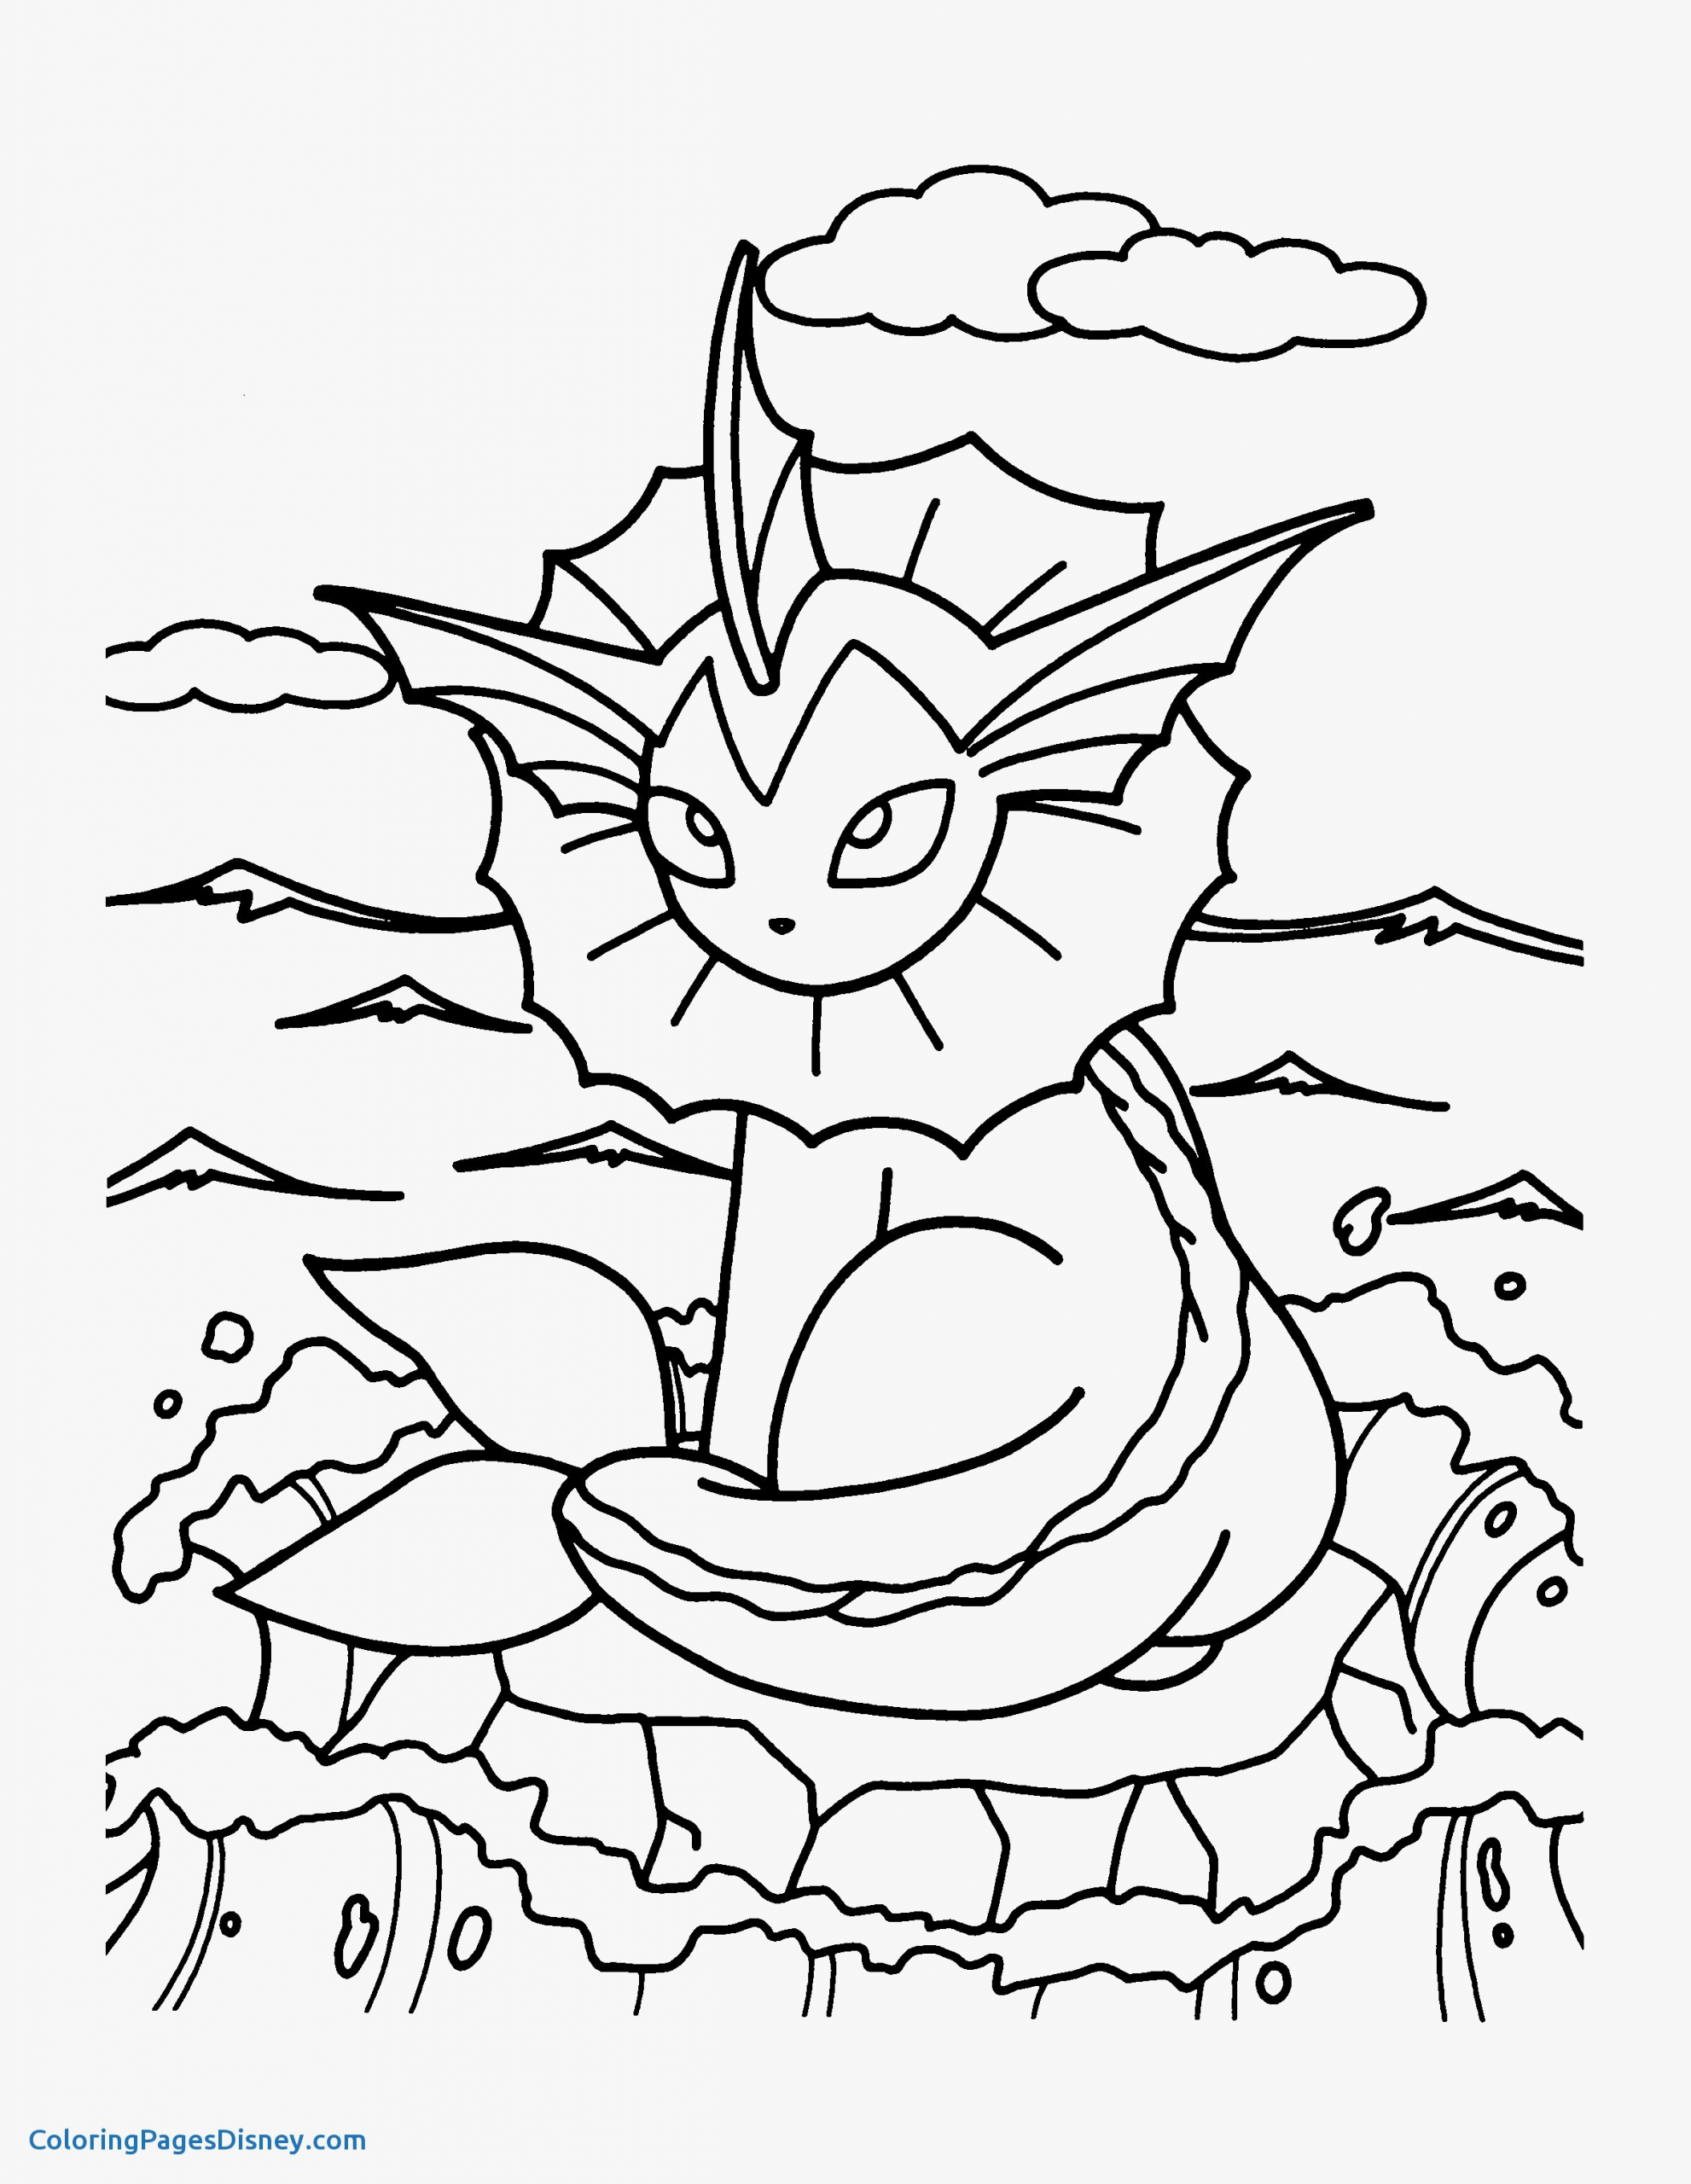 Pin On Pokemon Coloring Page